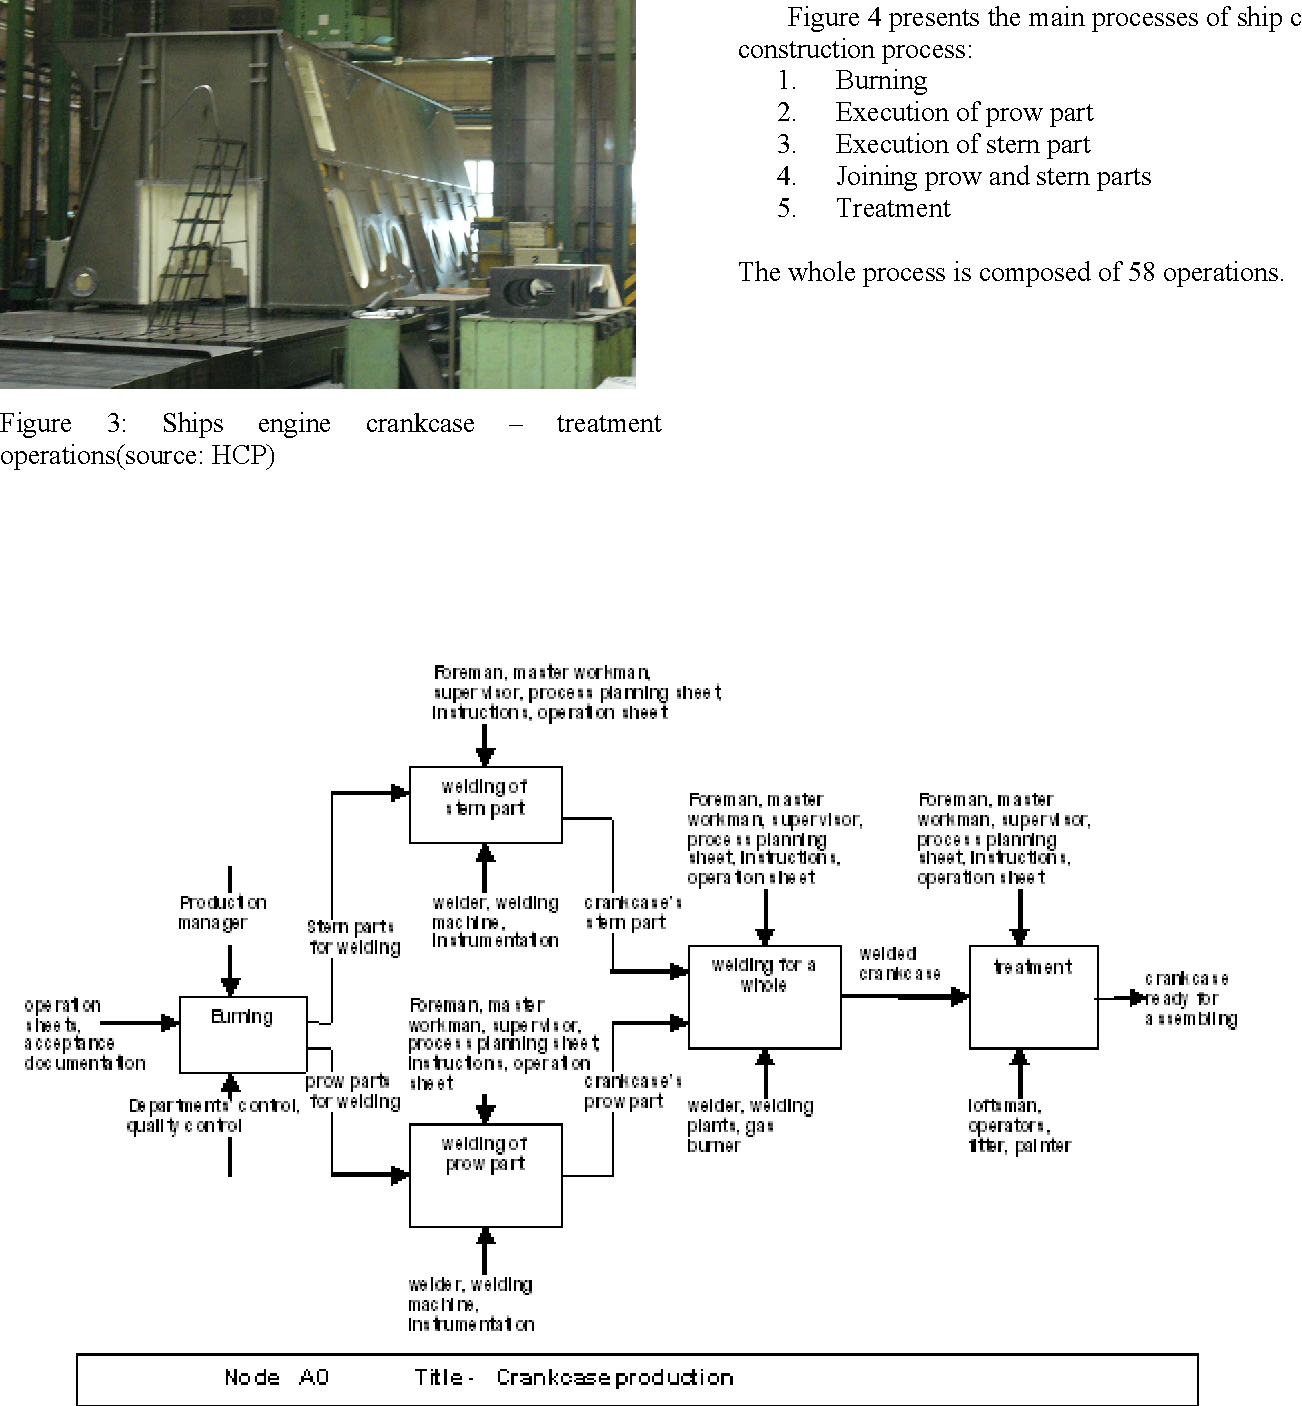 Supportive role of the simulation in the process of ship engine